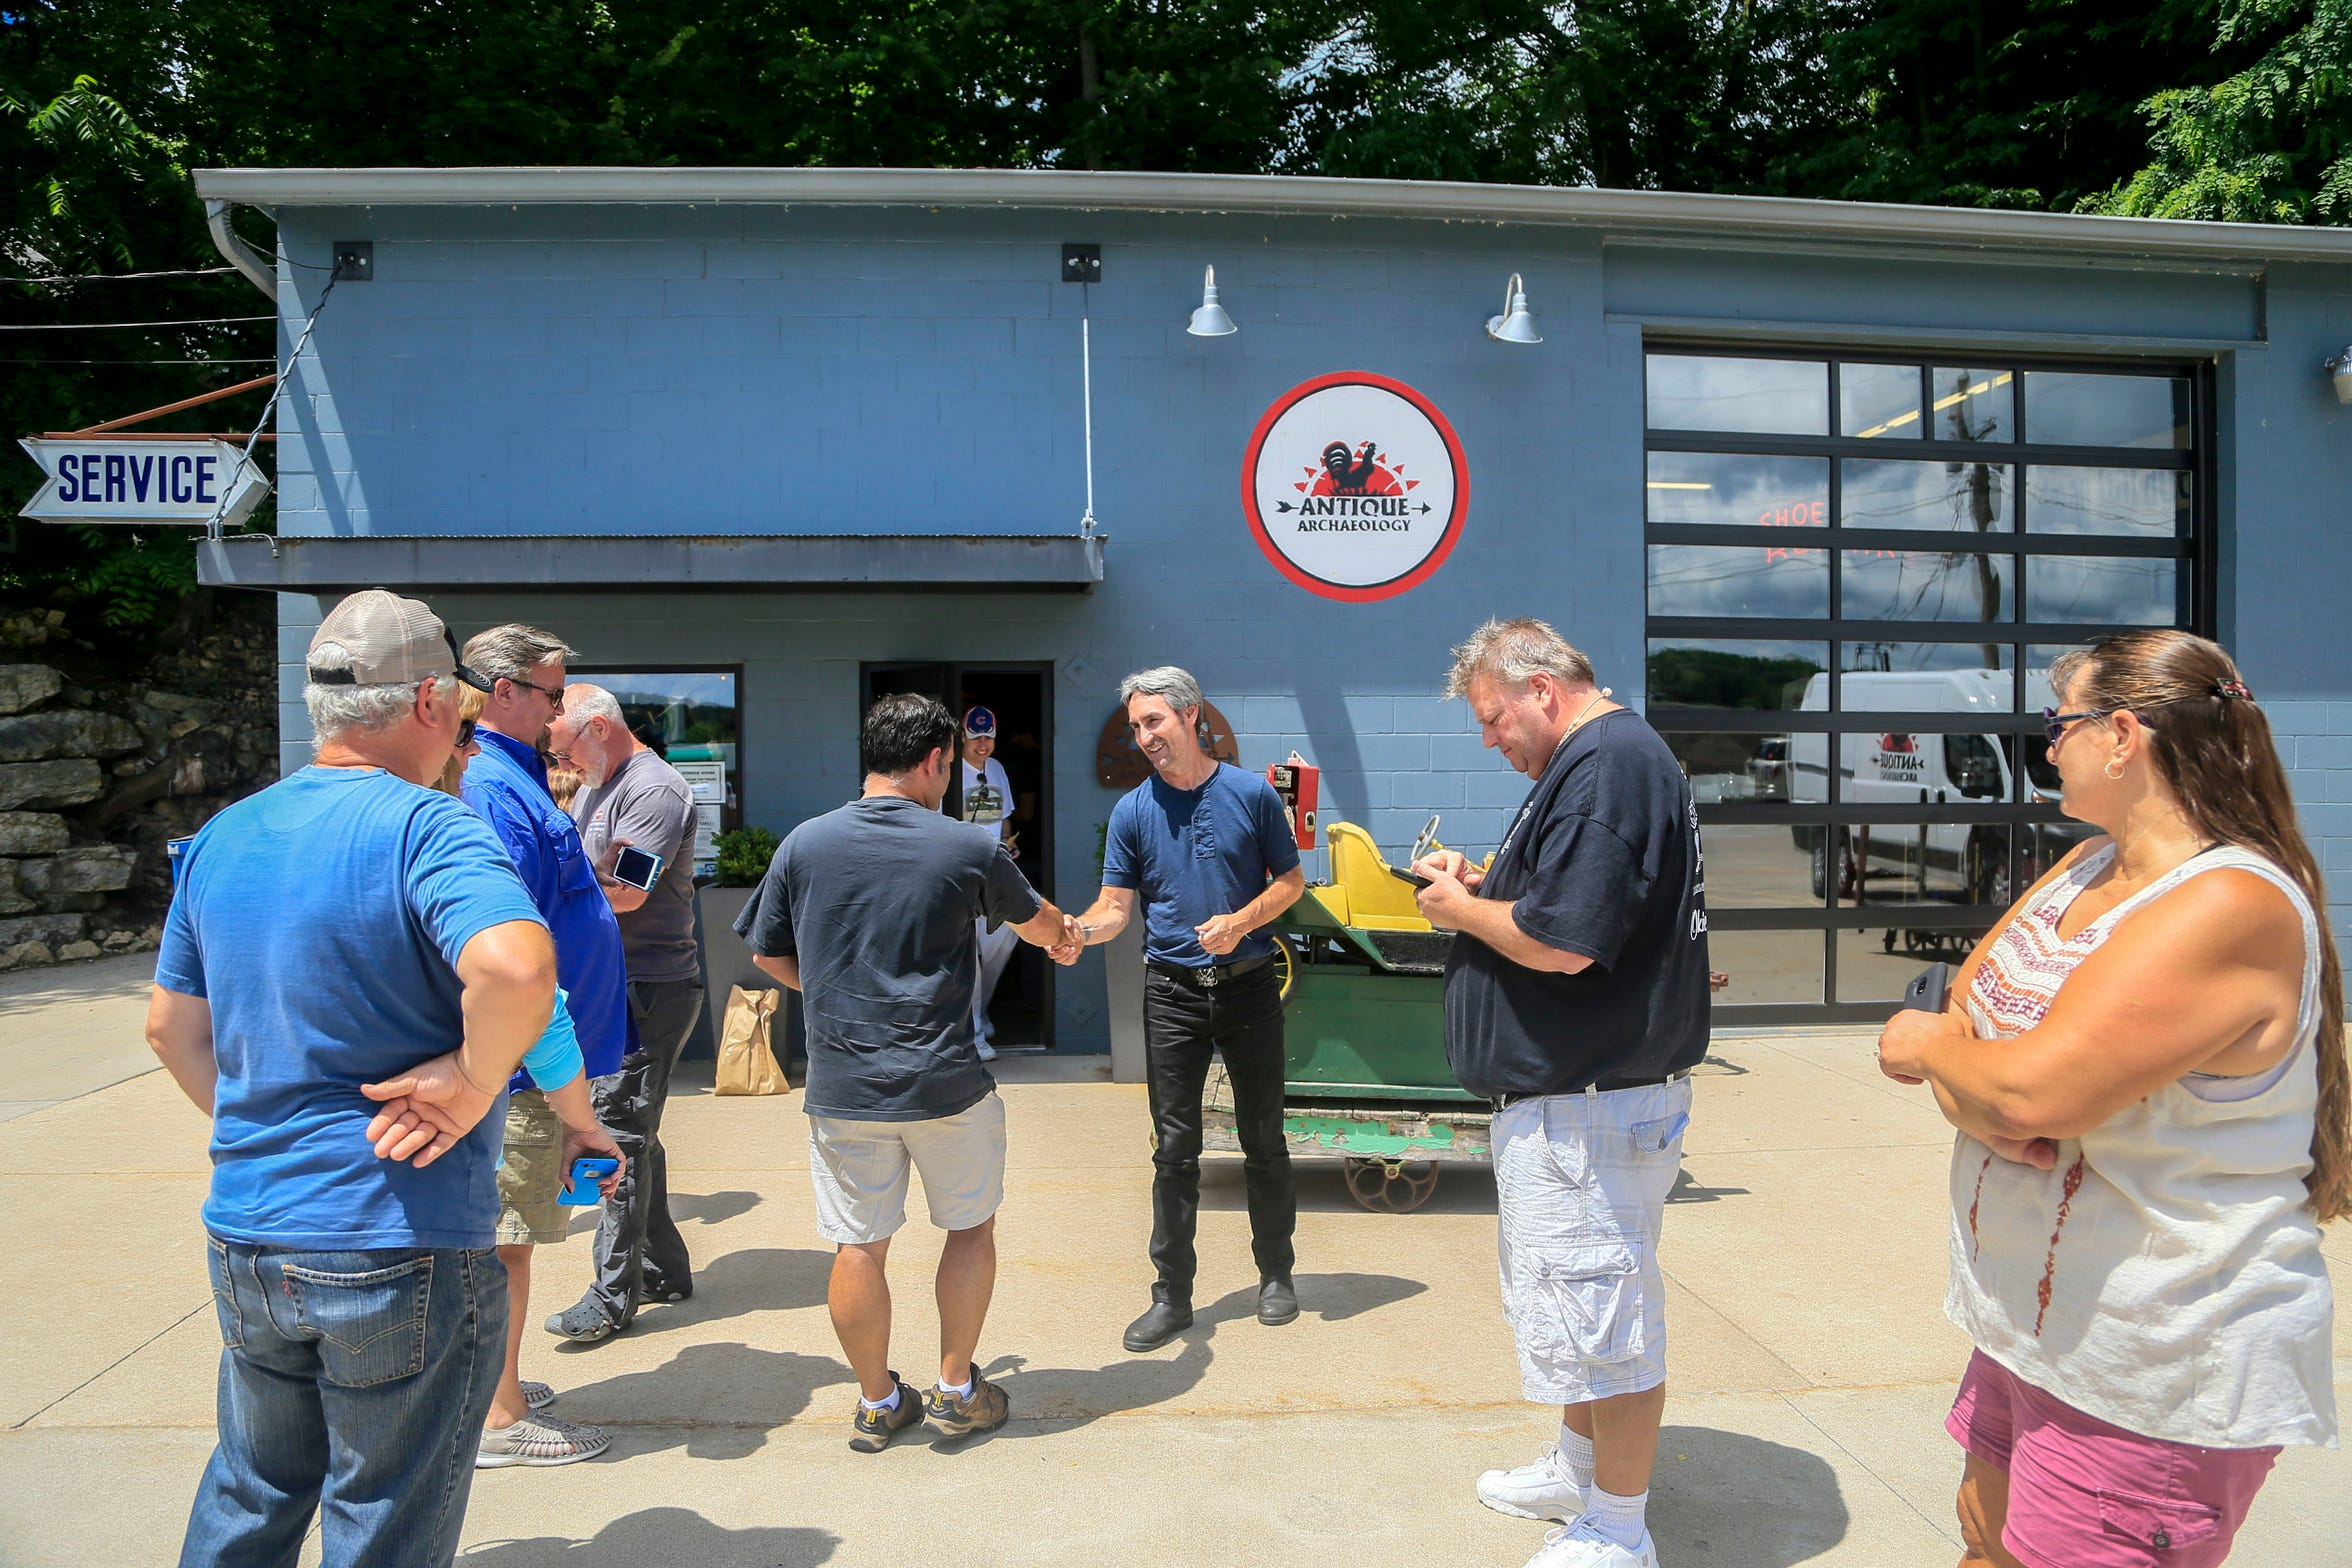 Mike Wolfe of American Pickers fame greets fans outside his store Antique Archaeology in LeClaire June 27, 2018.